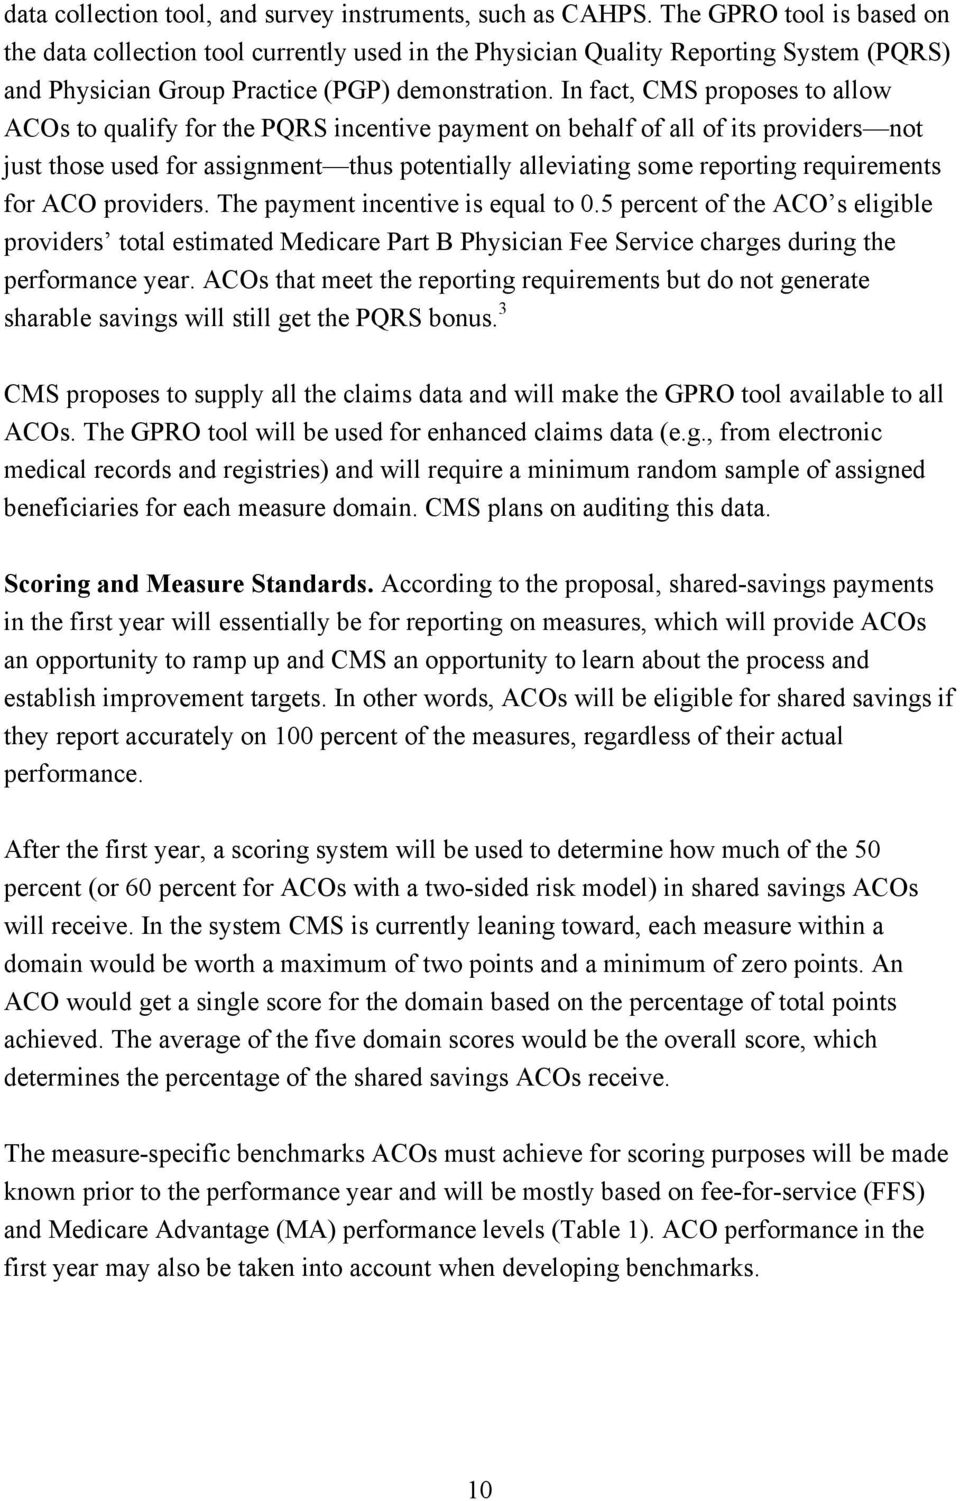 In fact, CMS proposes to allow ACOs to qualify for the PQRS incentive payment on behalf of all of its providers not just those used for assignment thus potentially alleviating some reporting